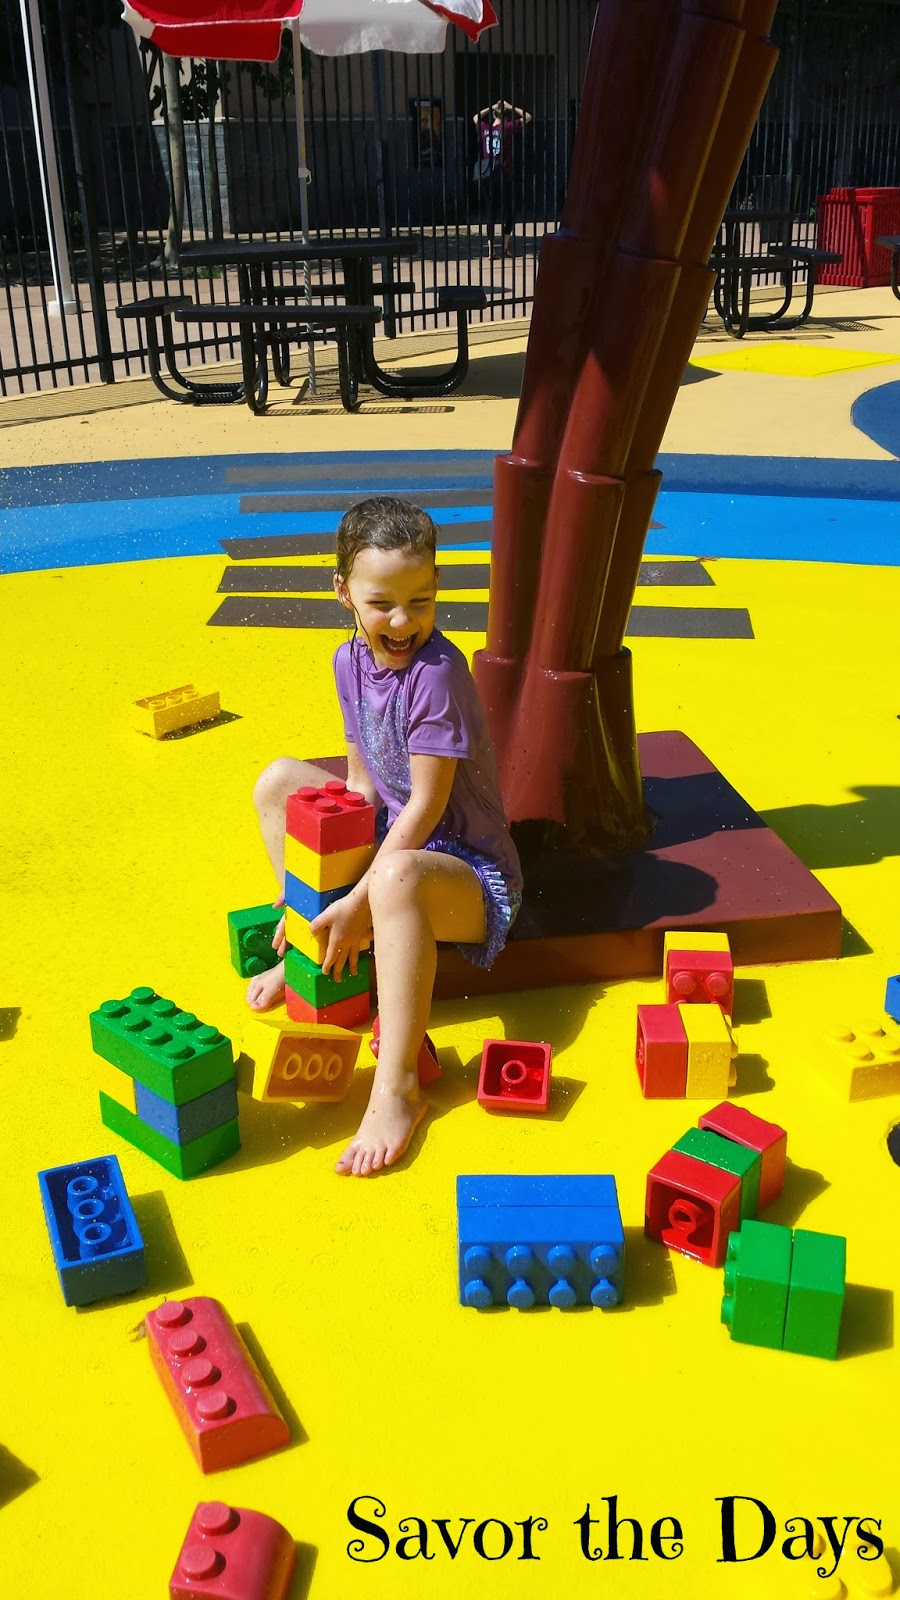 Giant Legos at Pirate Beach at Legoland Discovery Center in Grapevine